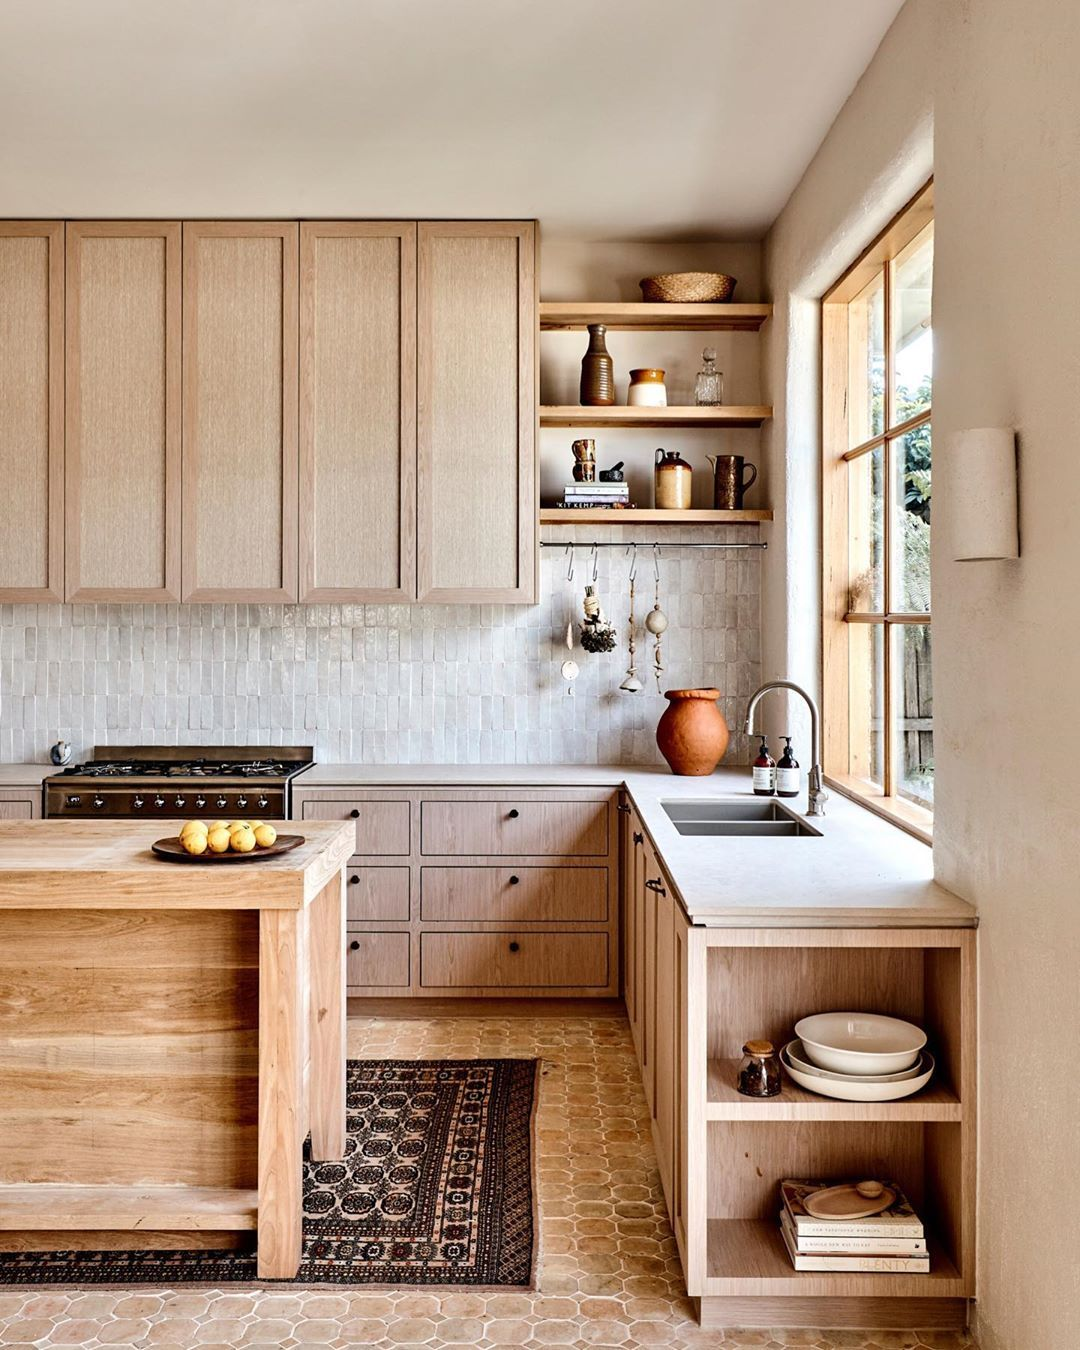 Remodelista On Instagram Every November For The Last 21 Years